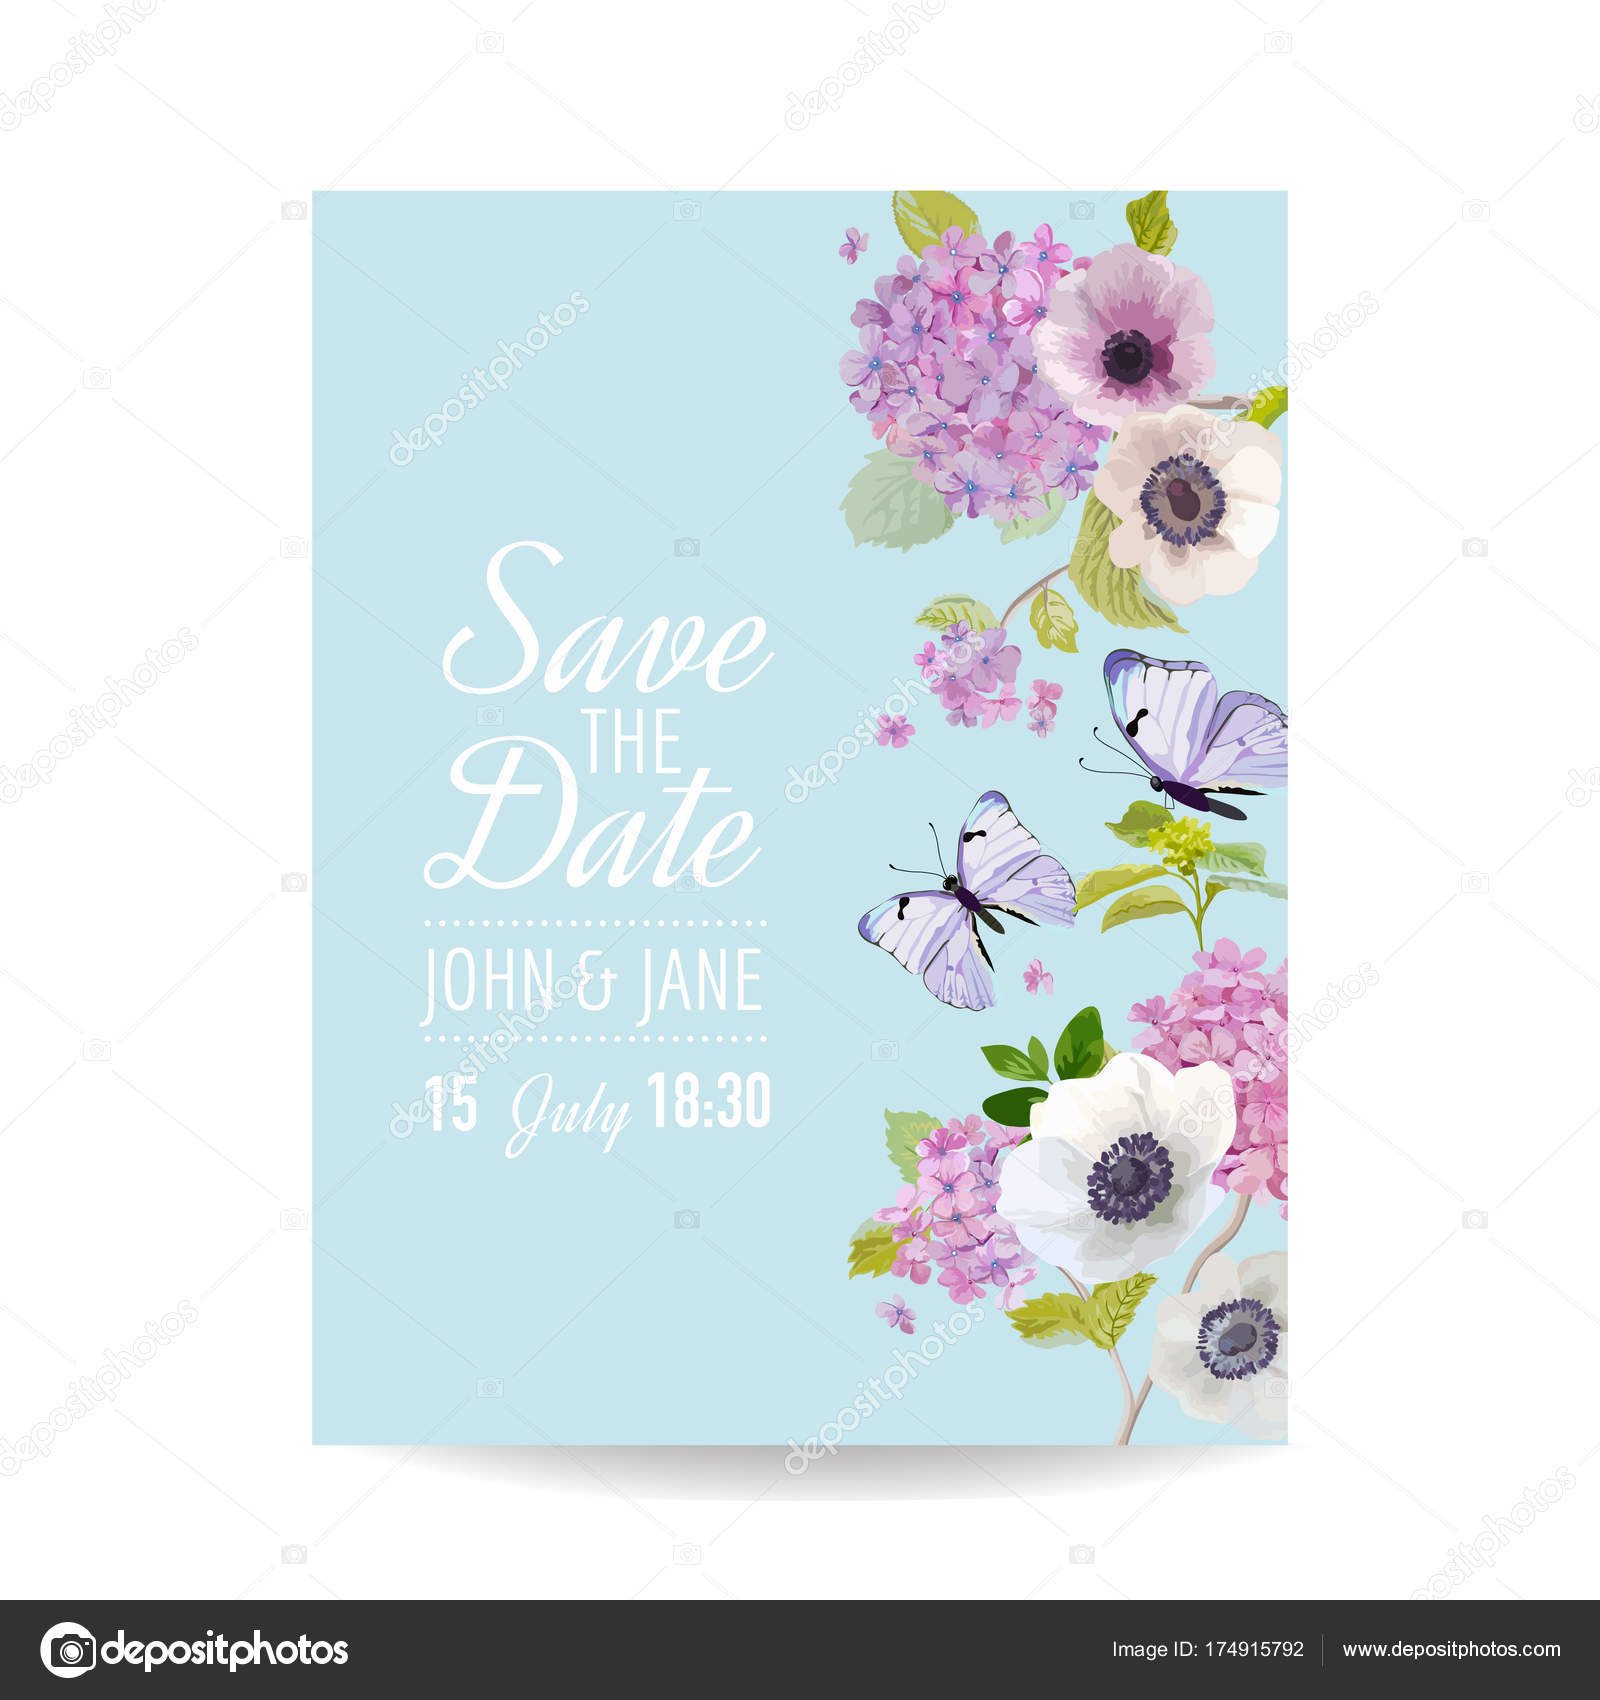 Save the Date Card Wedding Invitation Template. Botanical Card ...